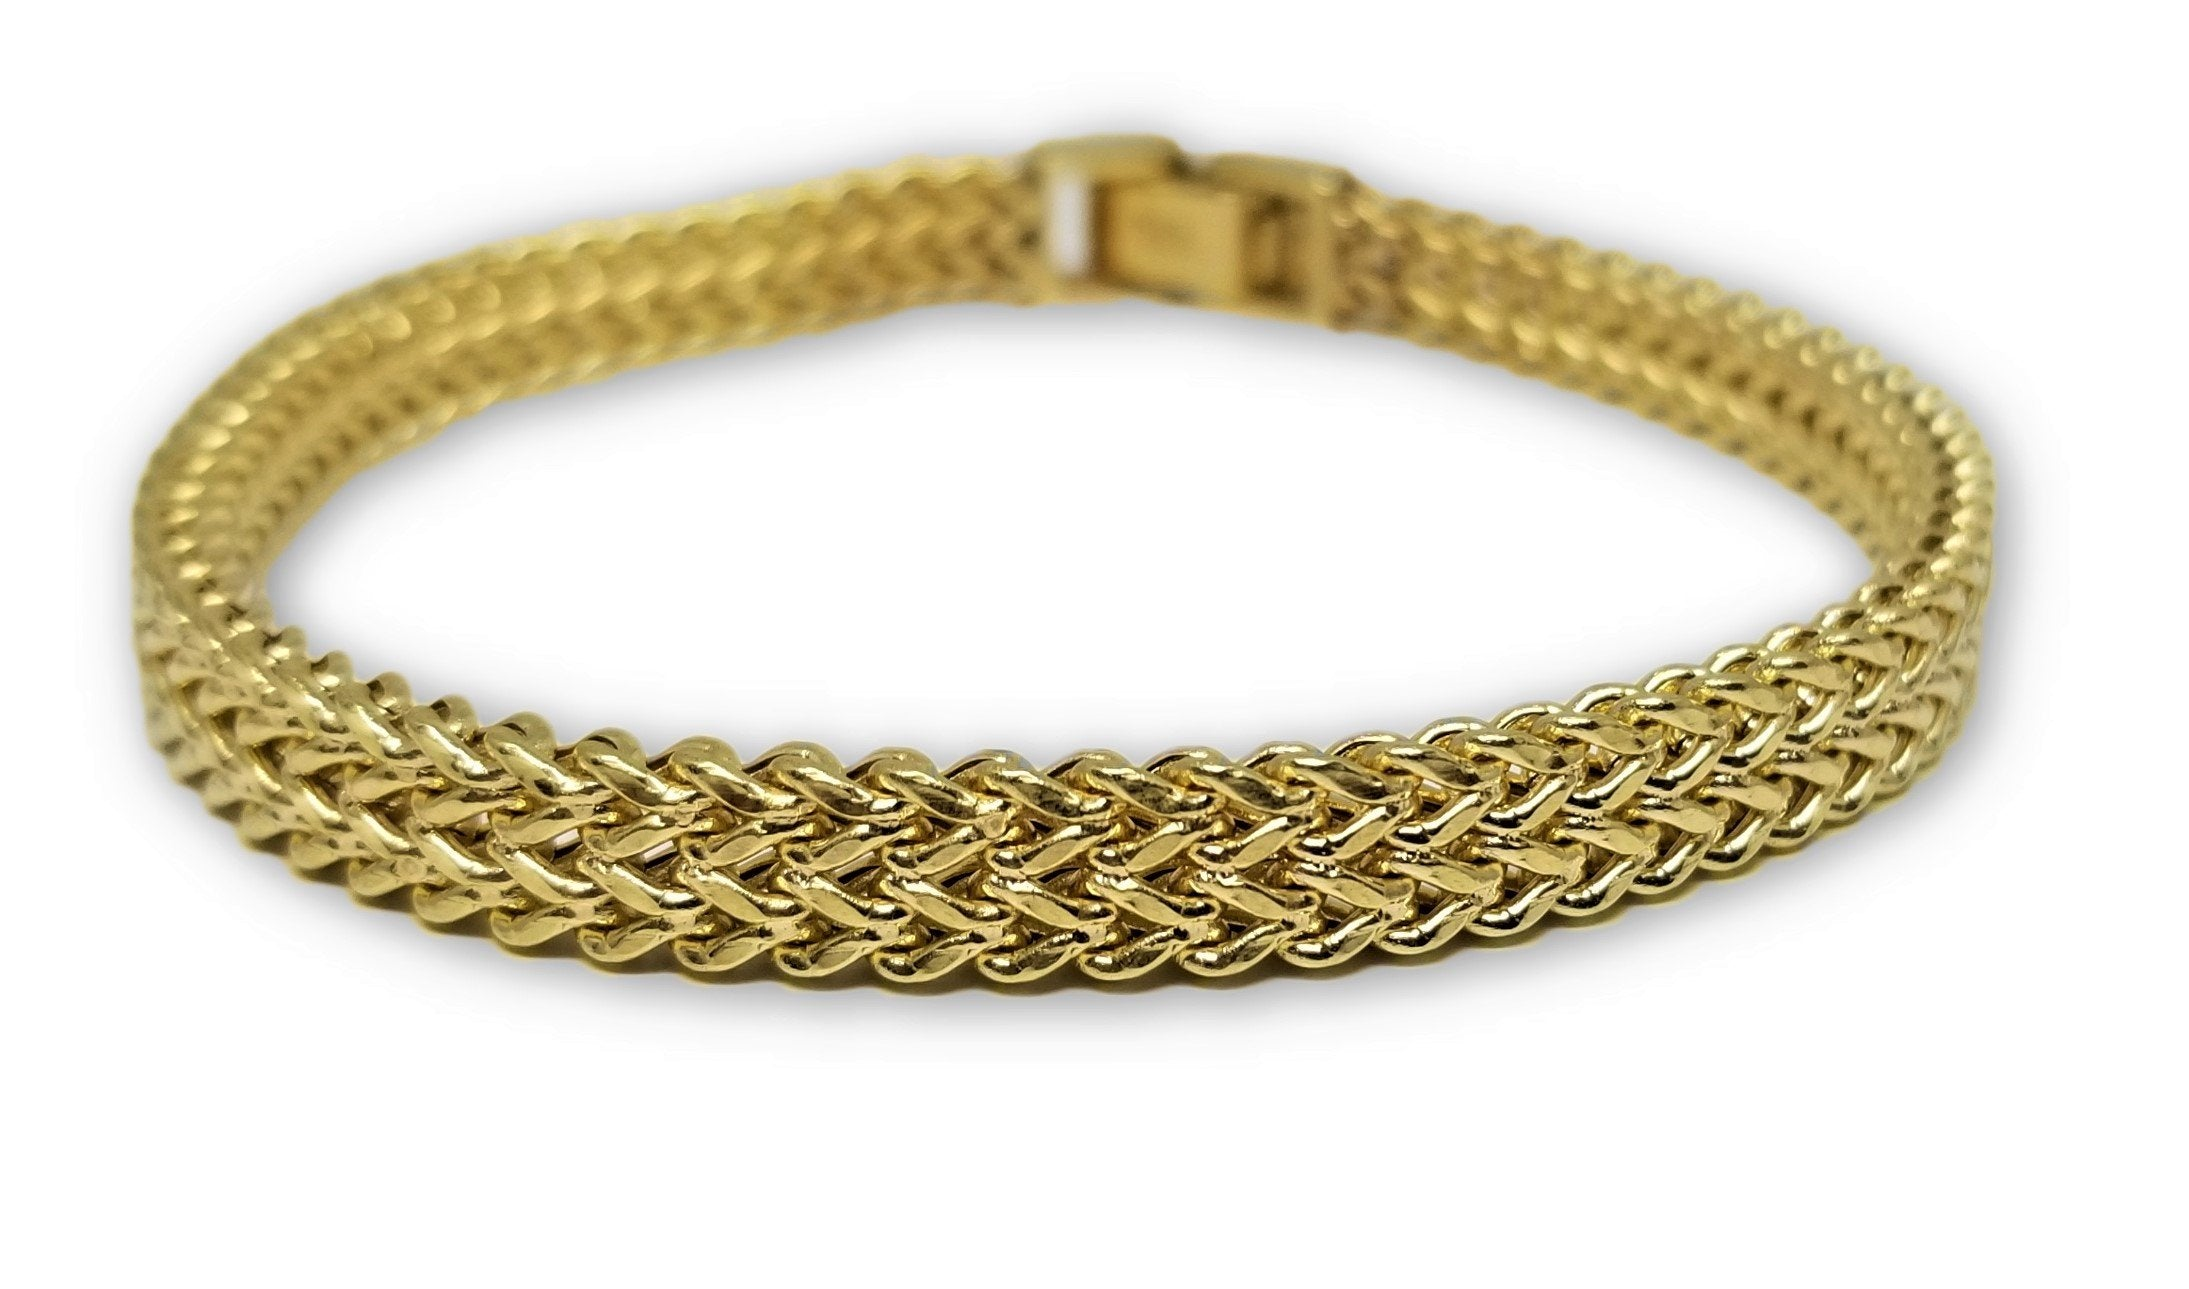 Bracelet Franco double maille style unique en or 10 k Italien 7mm - orquebec